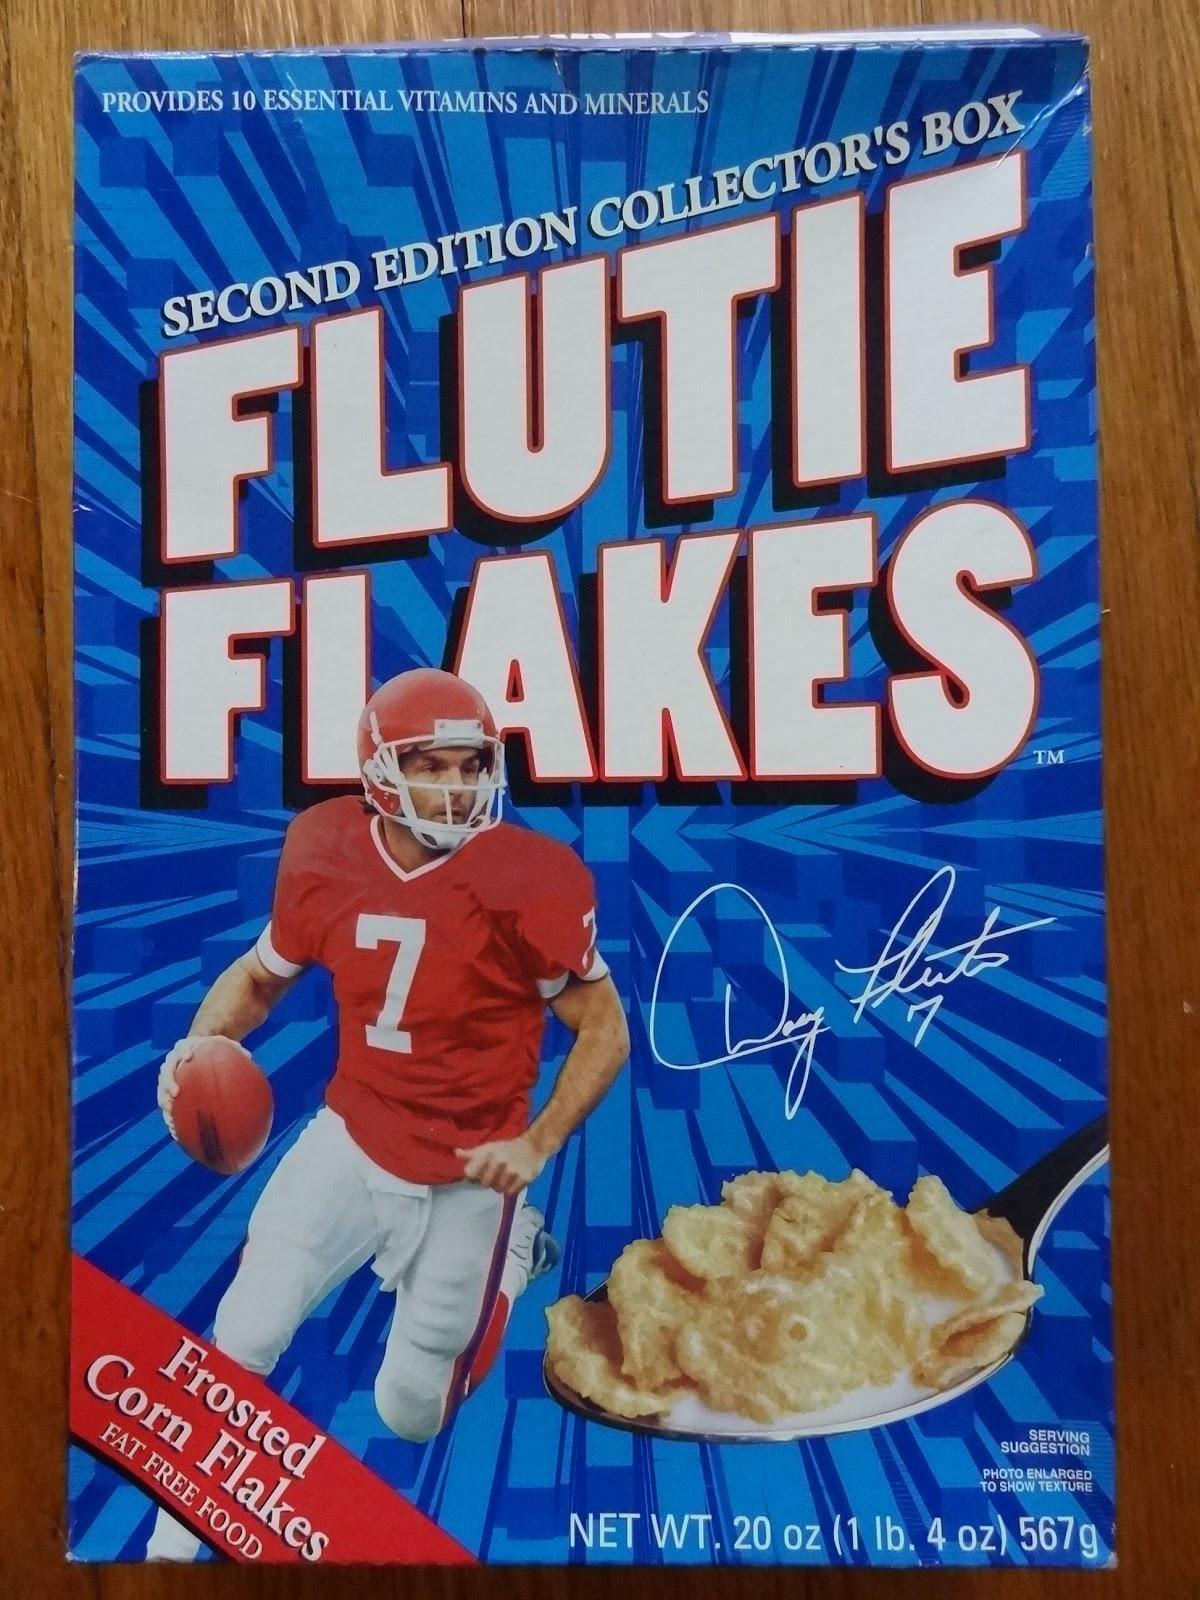 MONSTER DAD: Gronk Flakes vs  Flutie Flakes